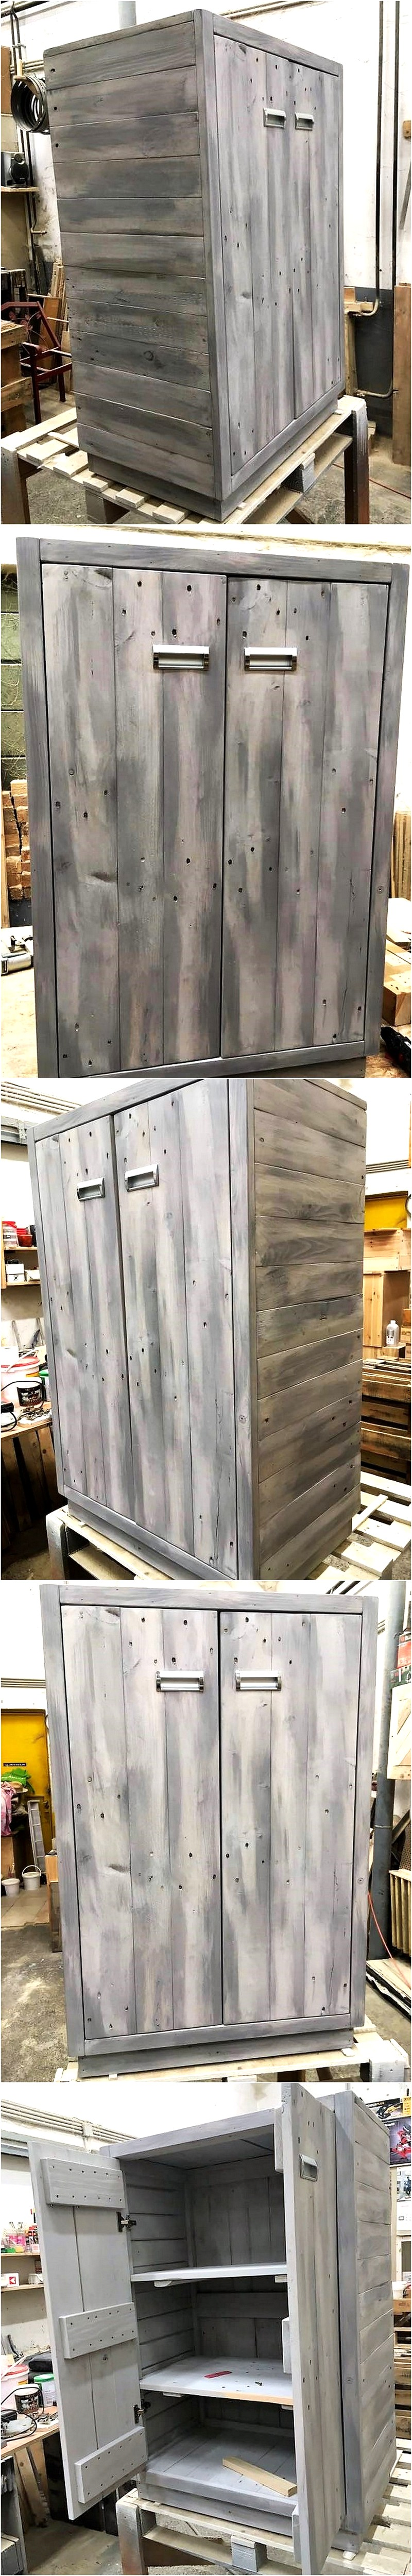 Recycled Wood Pallet Closet Project